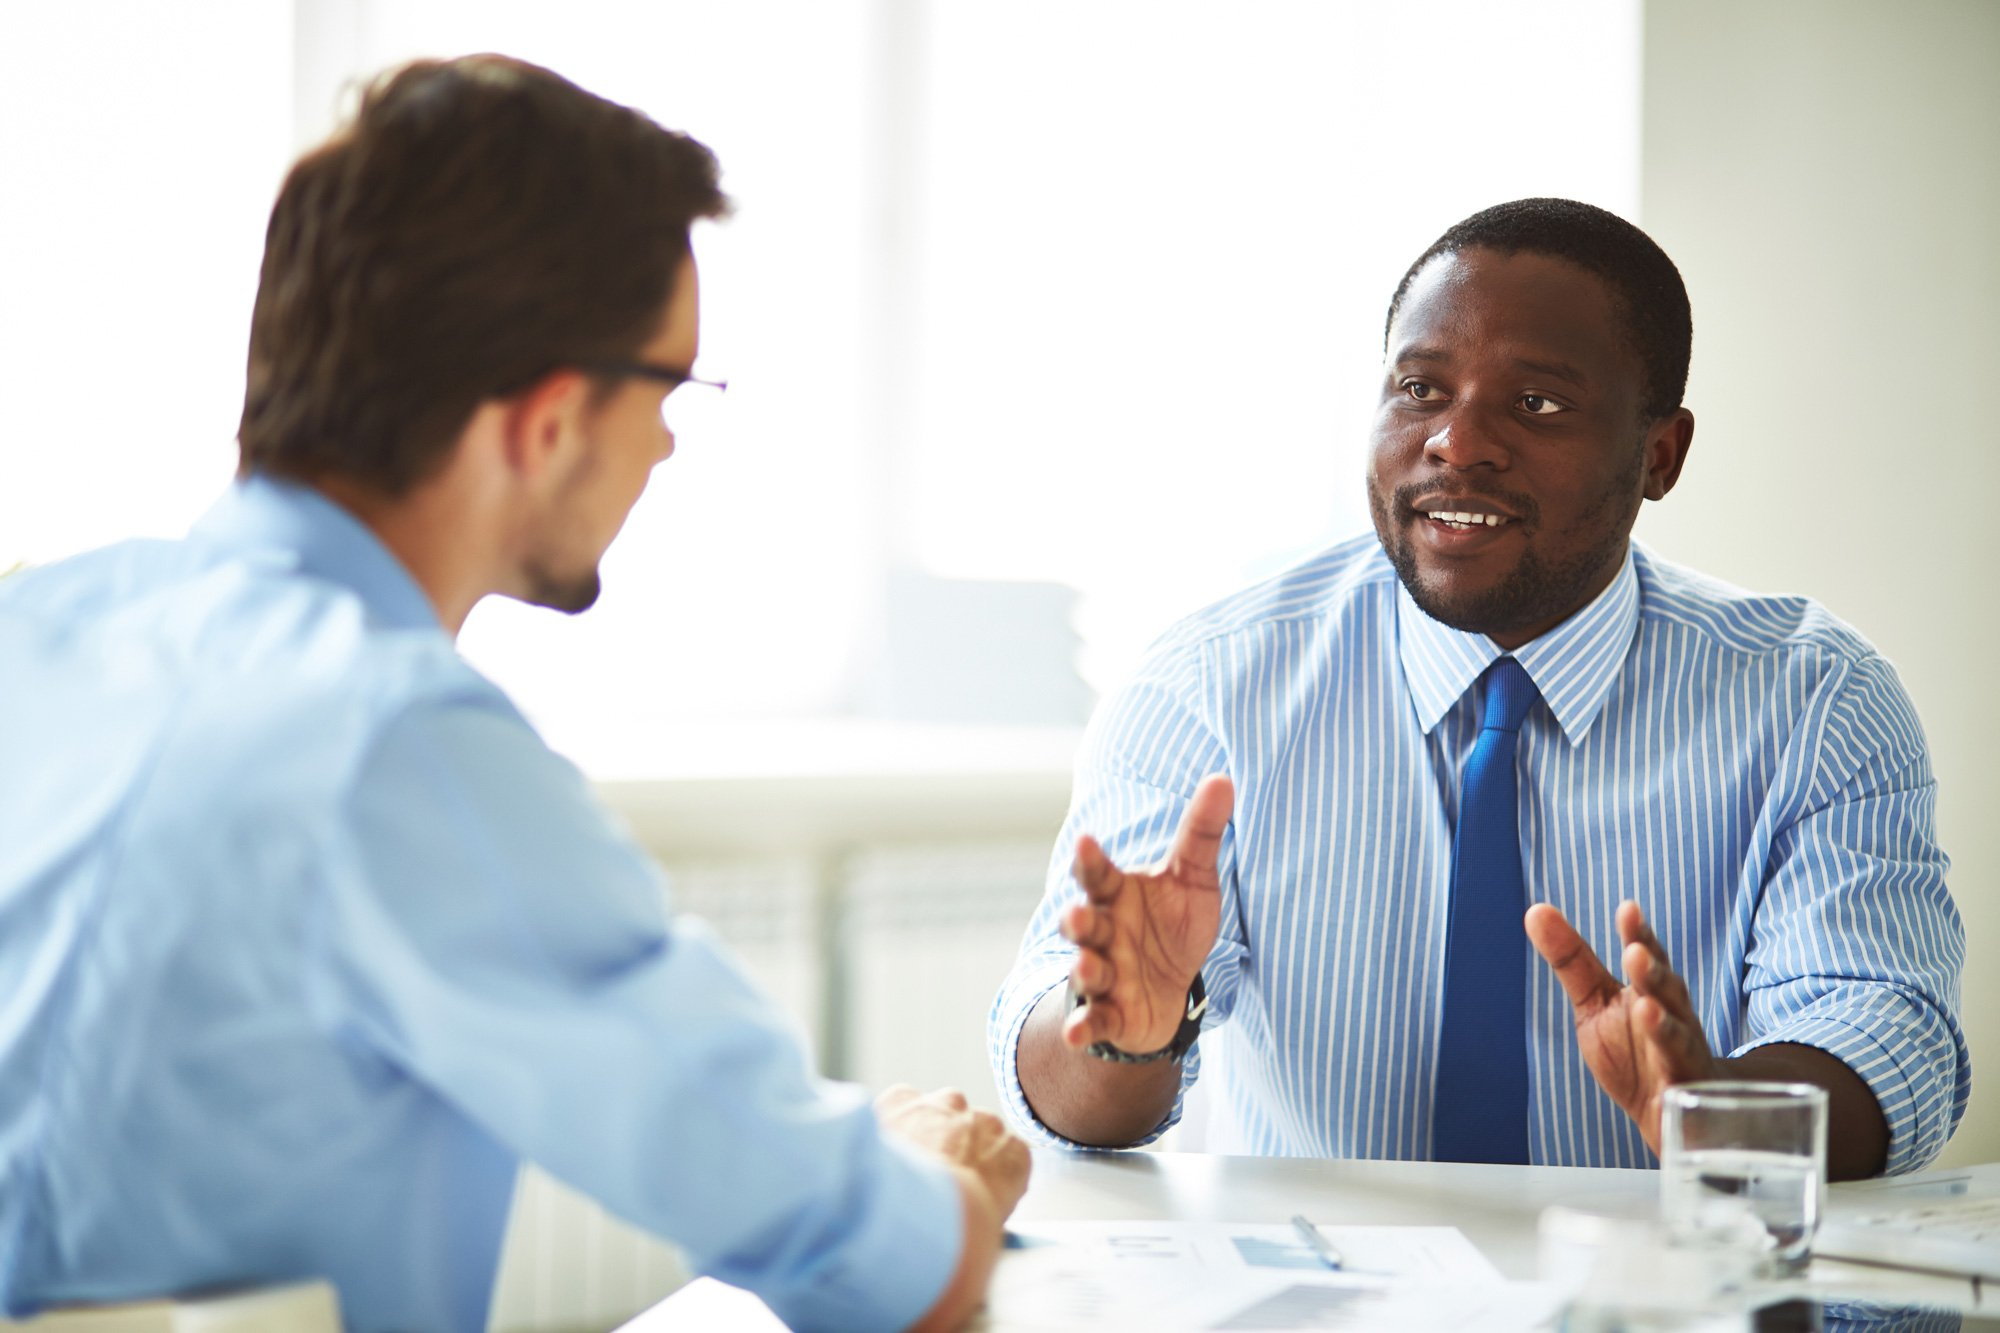 MISTAKES TO AVOID WHEN HIRING